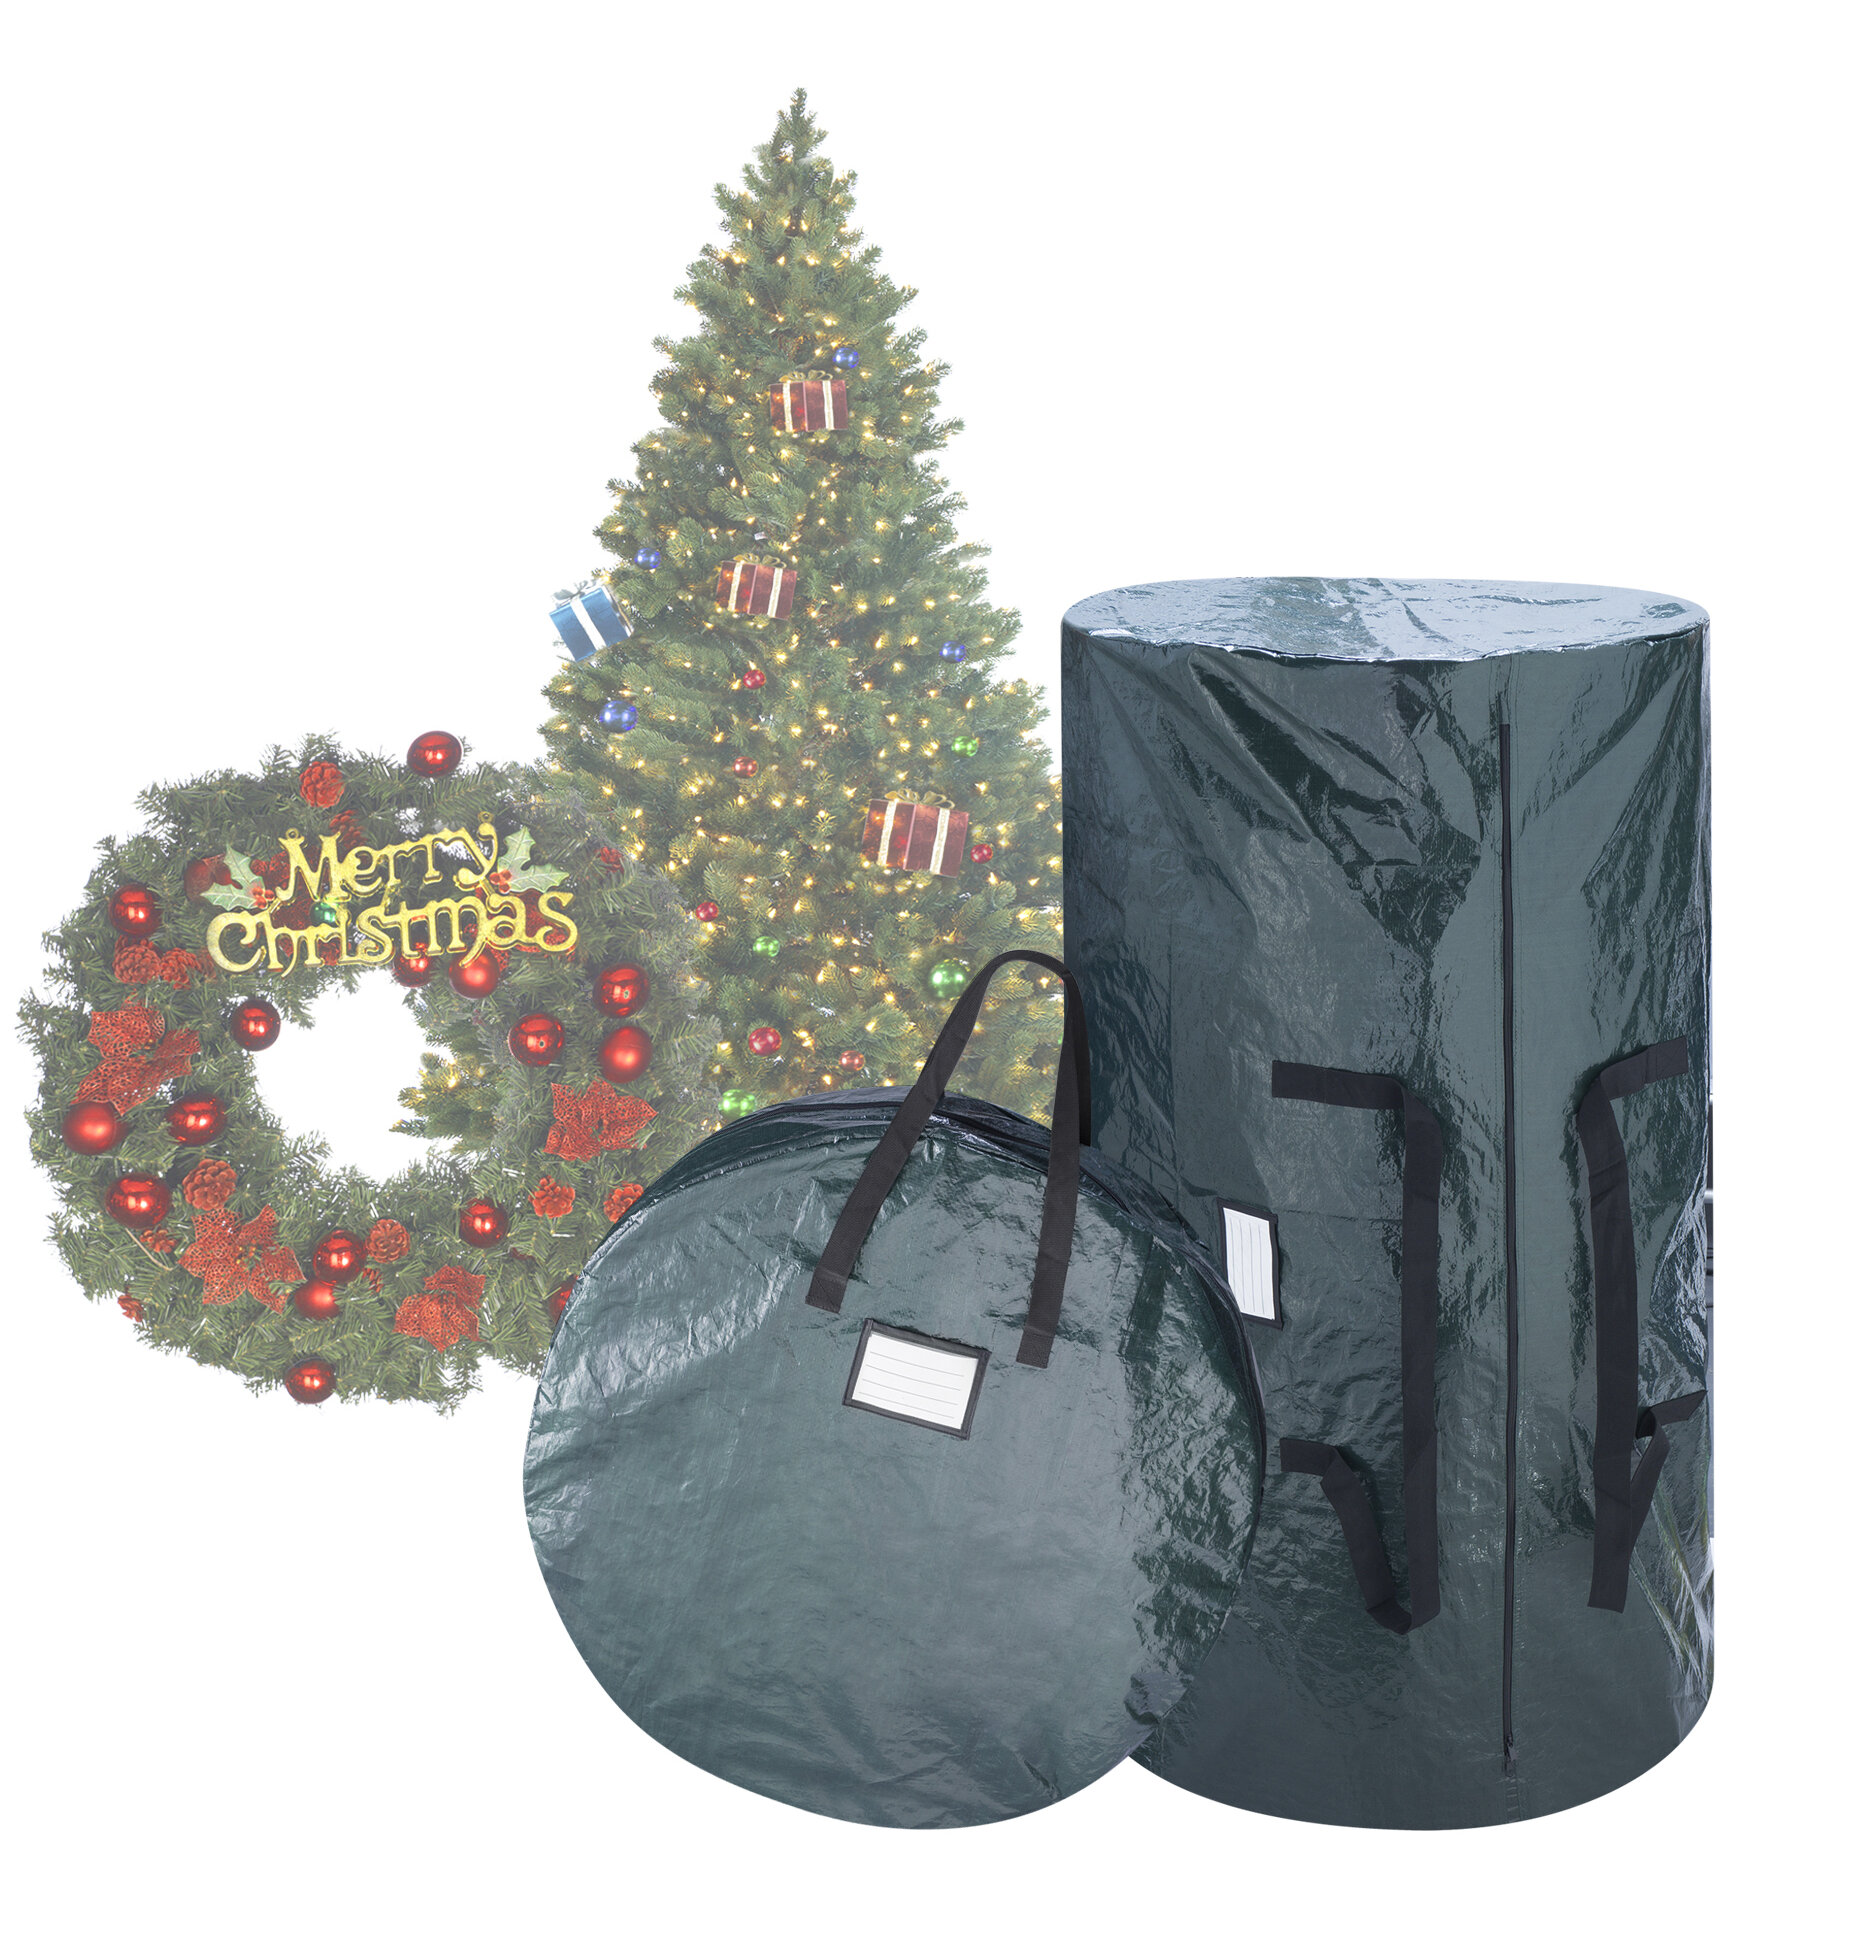 Christmas Tree Storage Bag.2 Piece Deluxe Green Christmas Tree Storage Bag Set